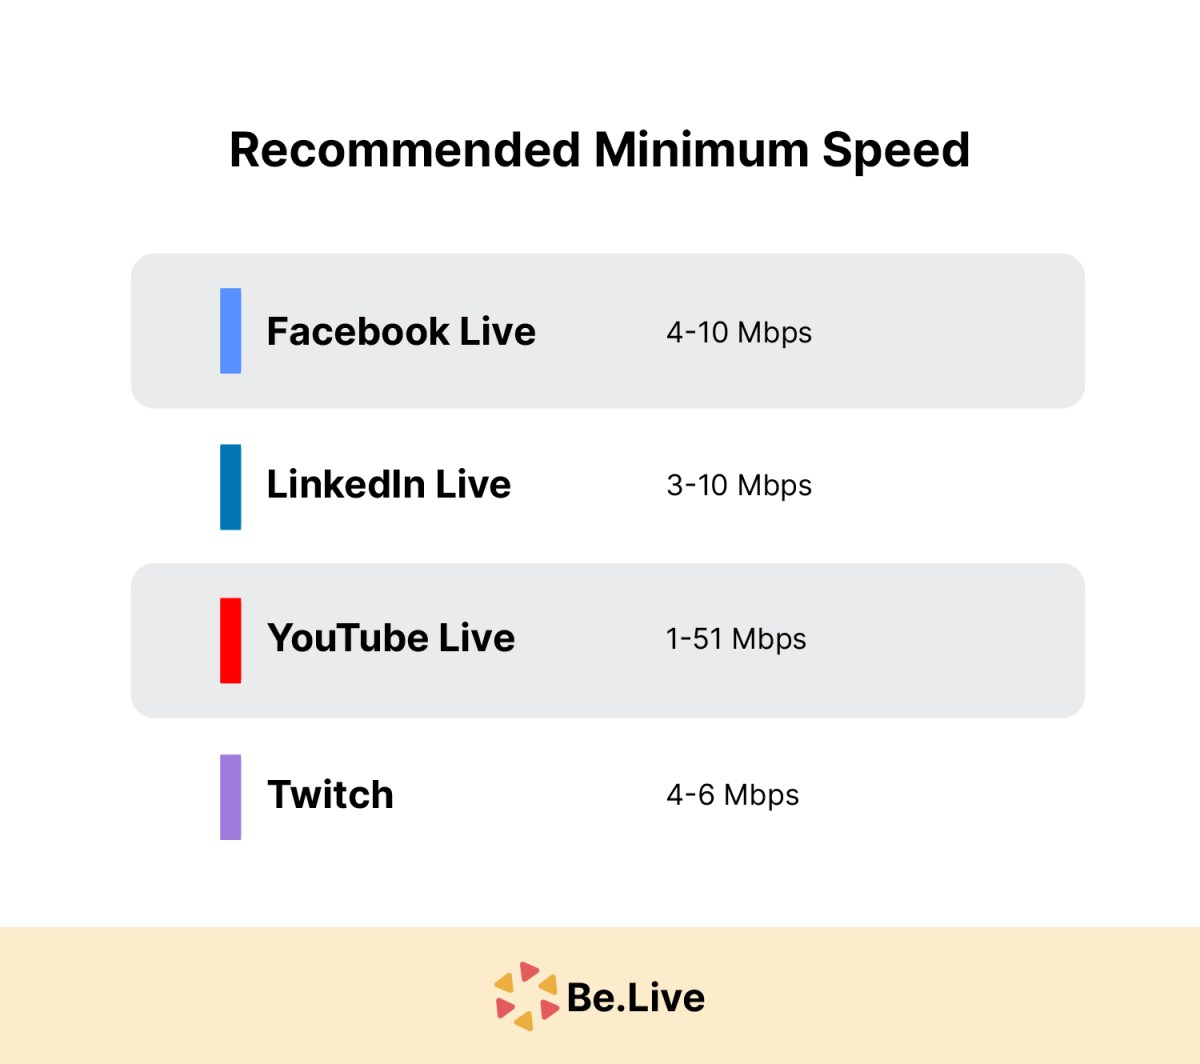 Recommended Minimum Speed for Live Streaming